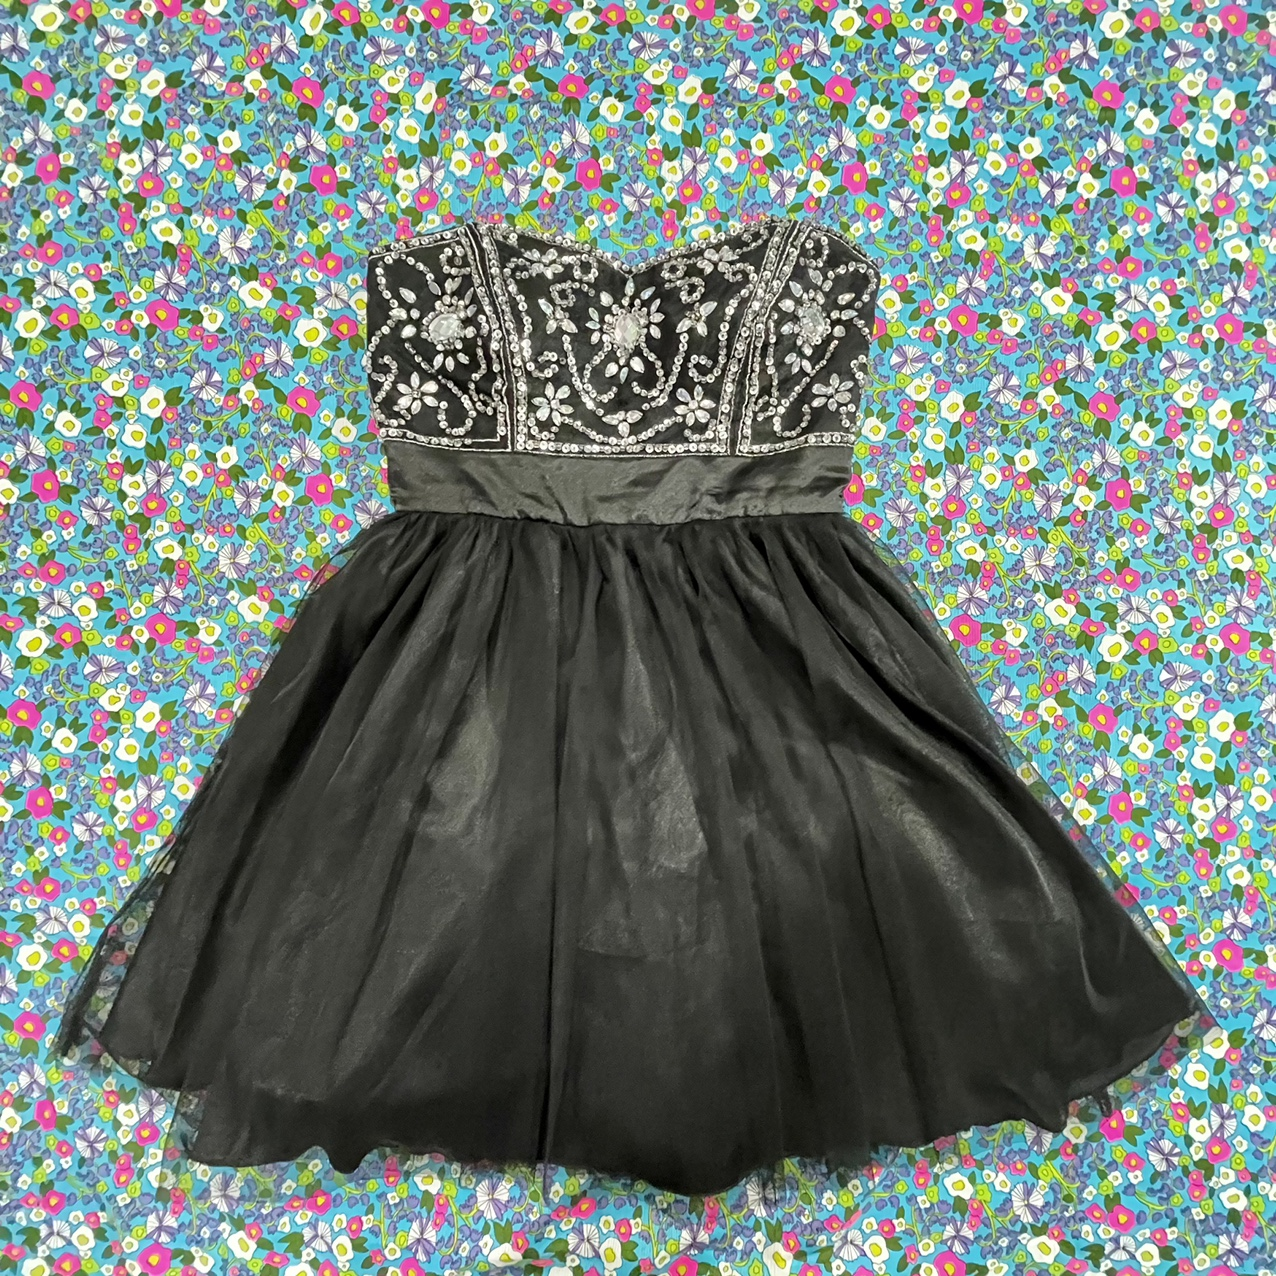 Product Image 1 - Gorgeous deb dress! . This is a